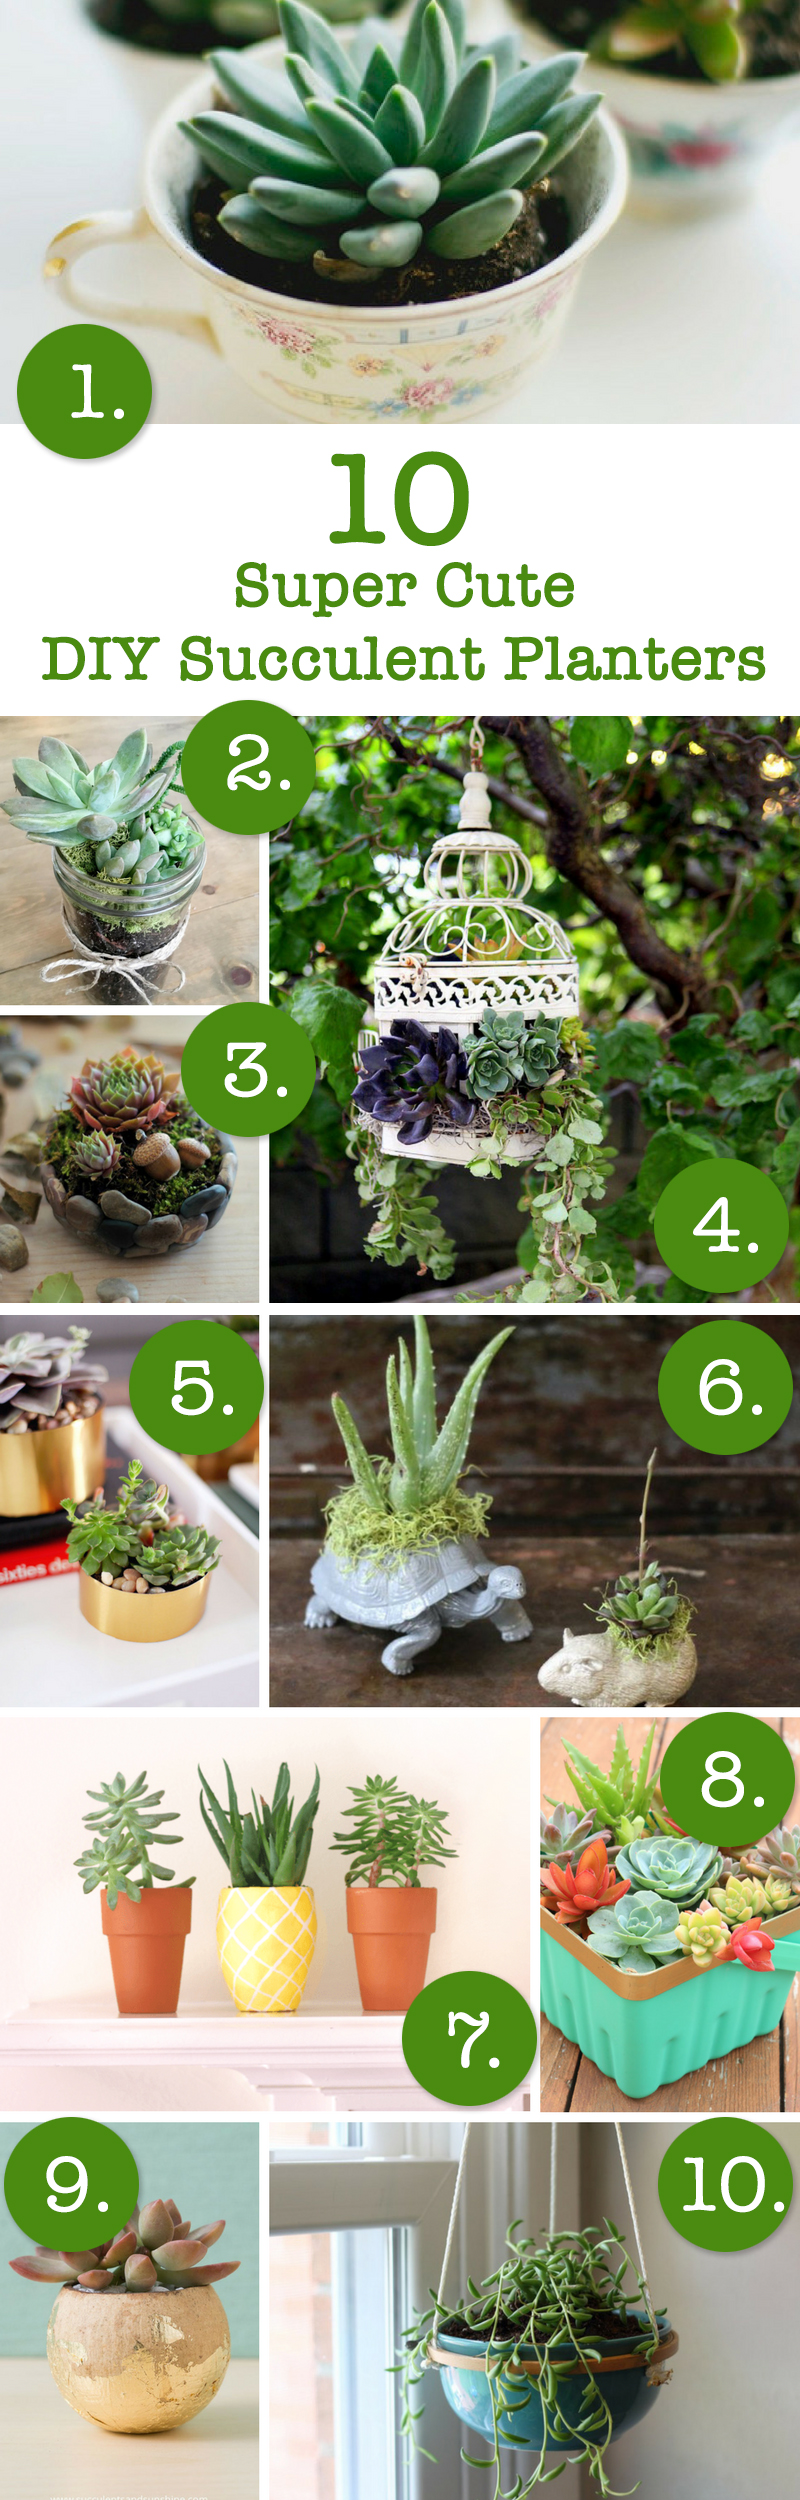 10 Super Cute Ways To Diy Succulent Planters April Bern